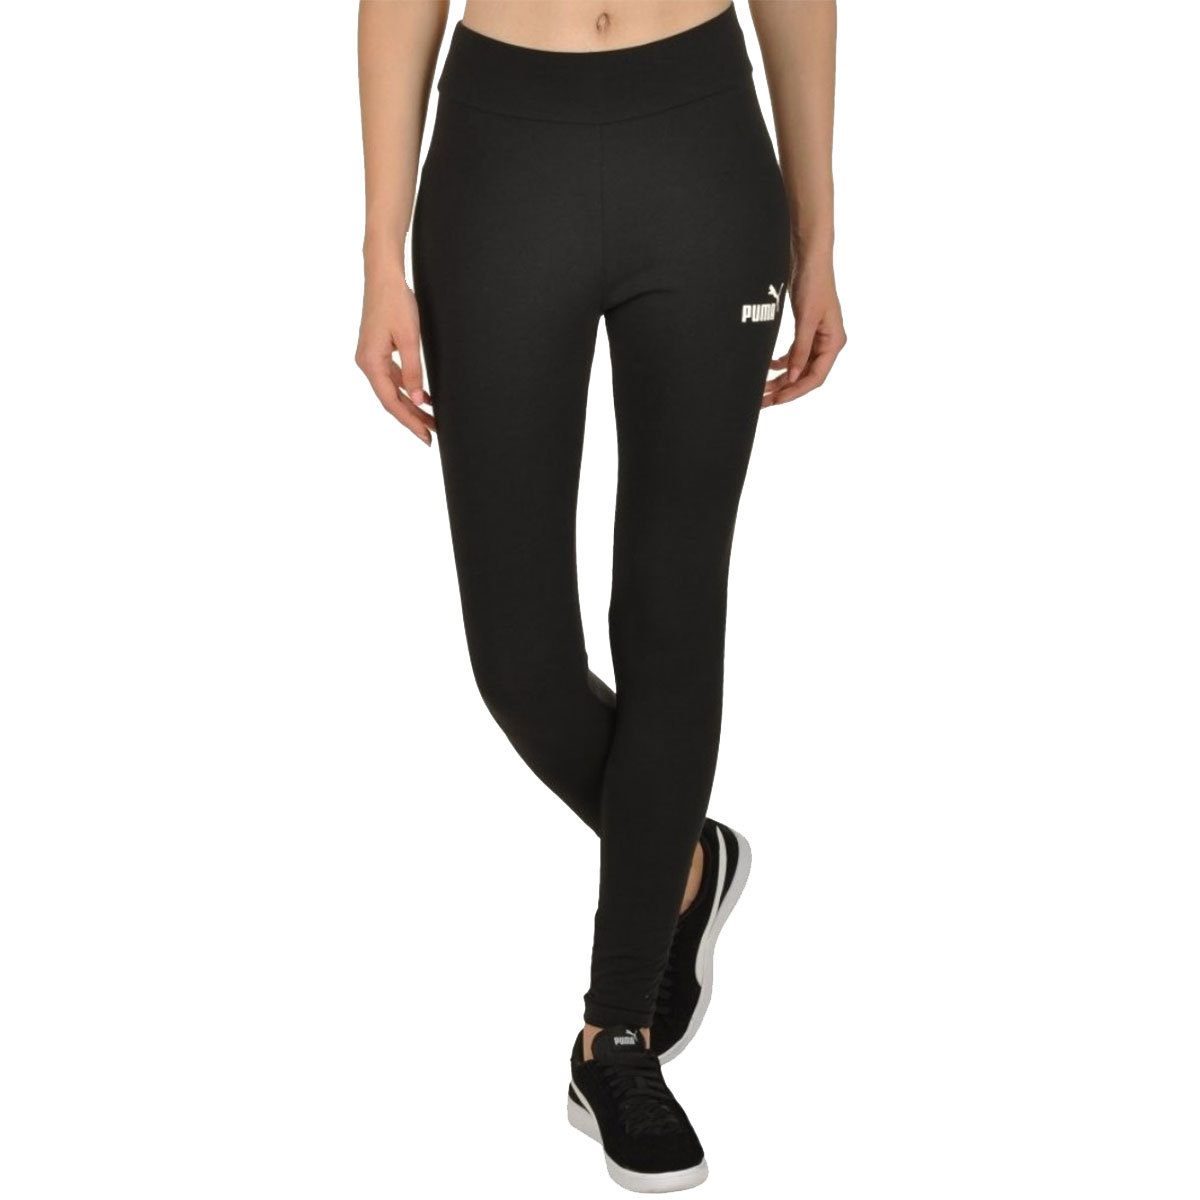 Puma Women's Essential Logo Leggings - Black, XL